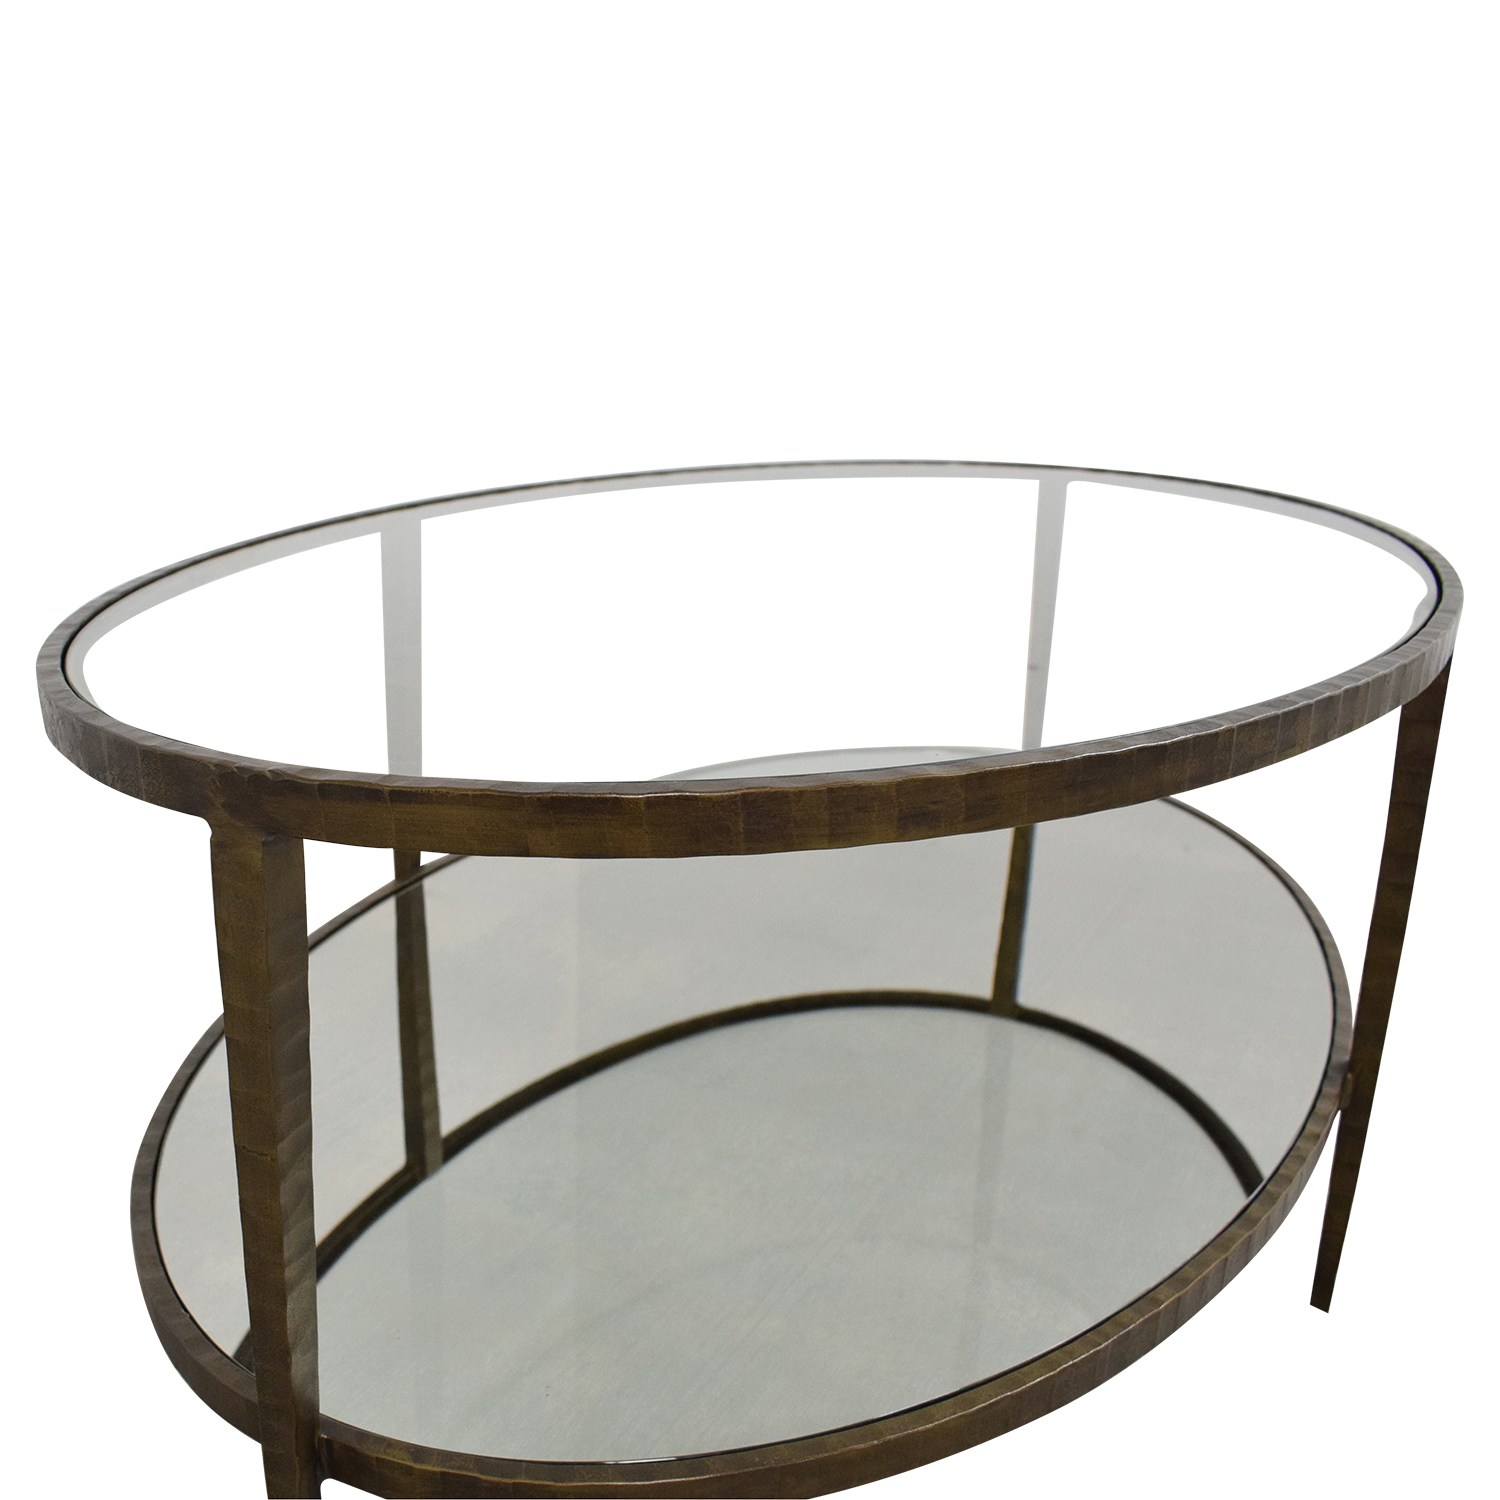 Crate & Barrel Crate & Barrel Clairemont Oval Coffee Table second hand